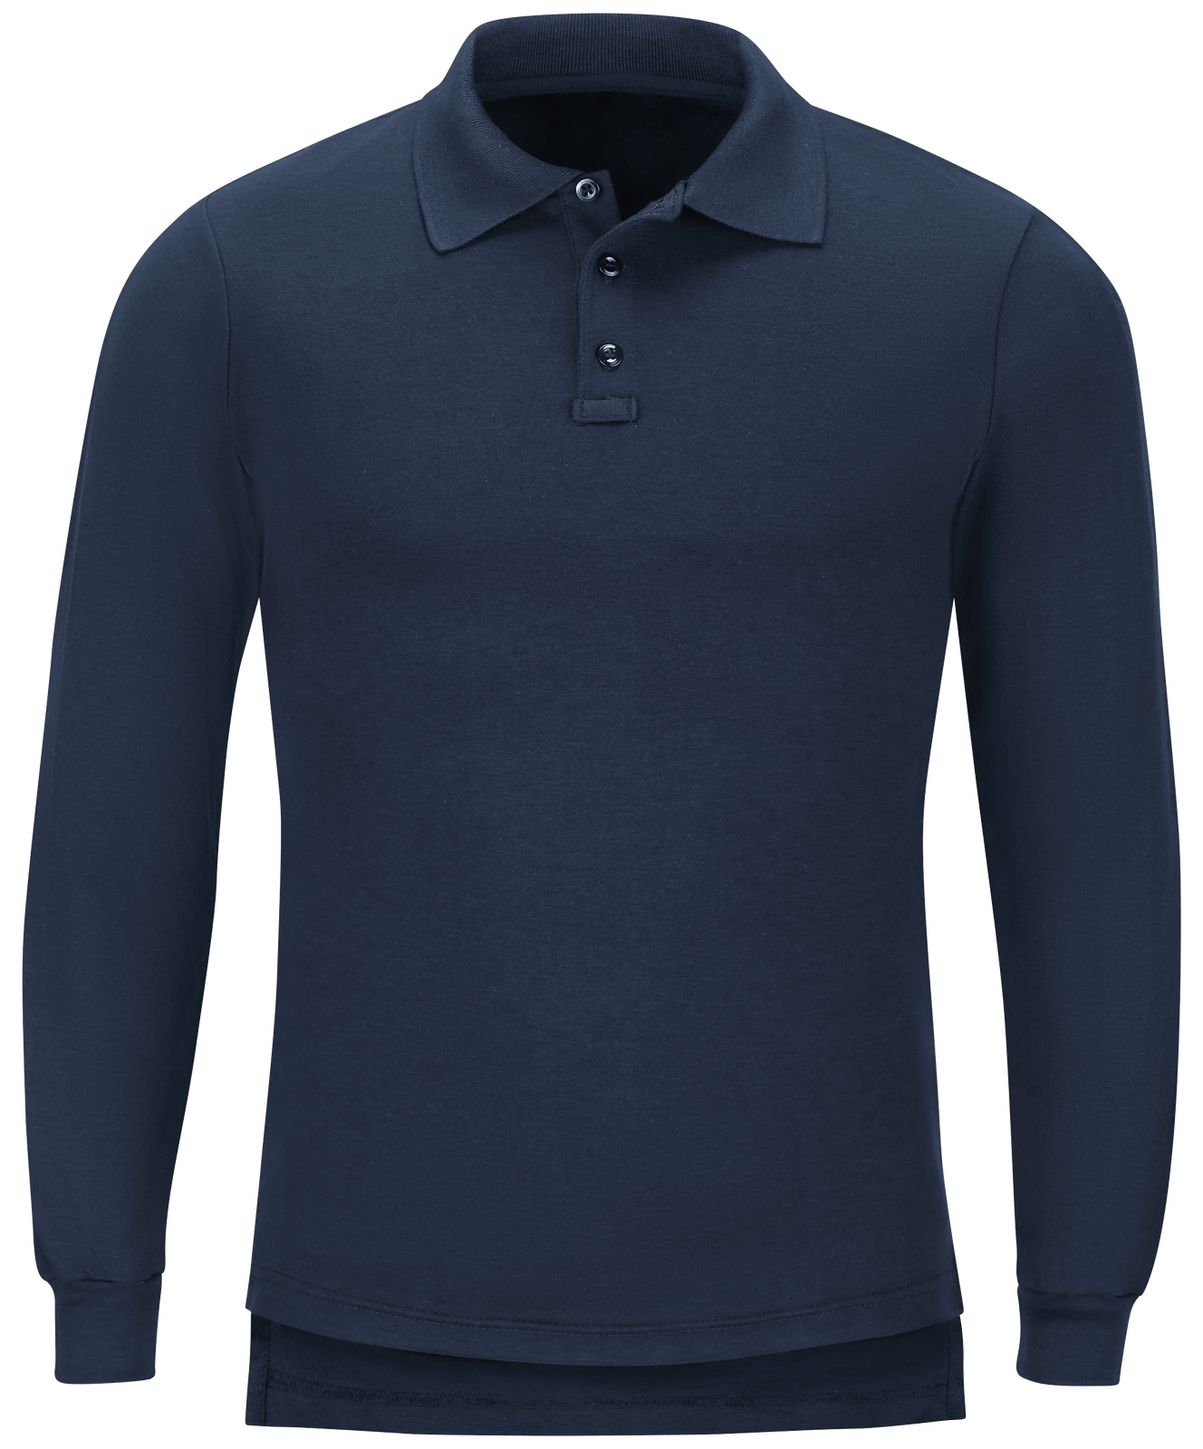 workrite-fr-polo-shirt-ft20-long-sleeve-station-wear-navy-front.jpg